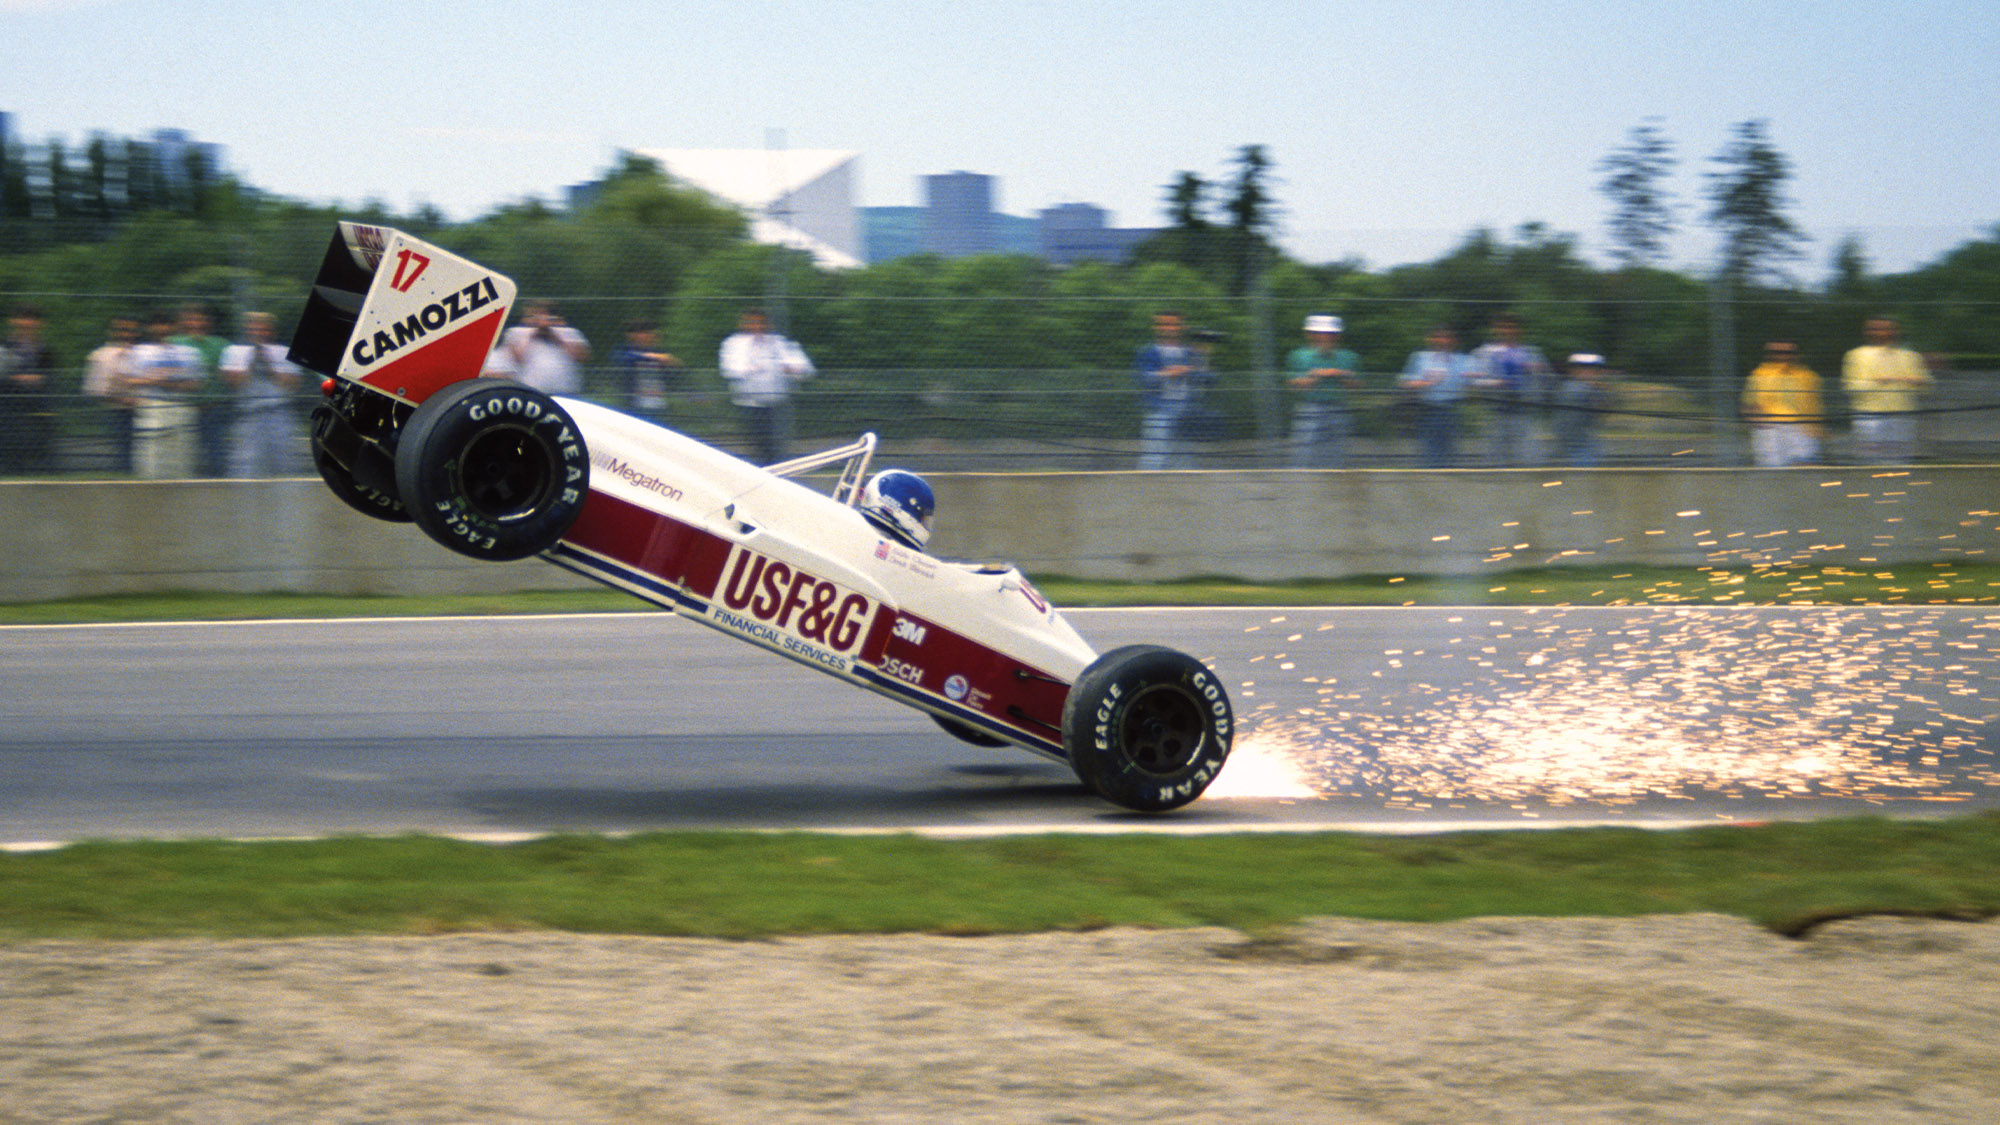 Sparks fly as Derek Warwick crashes his Arrows during practice for the 1988 Canadian Grand Prix